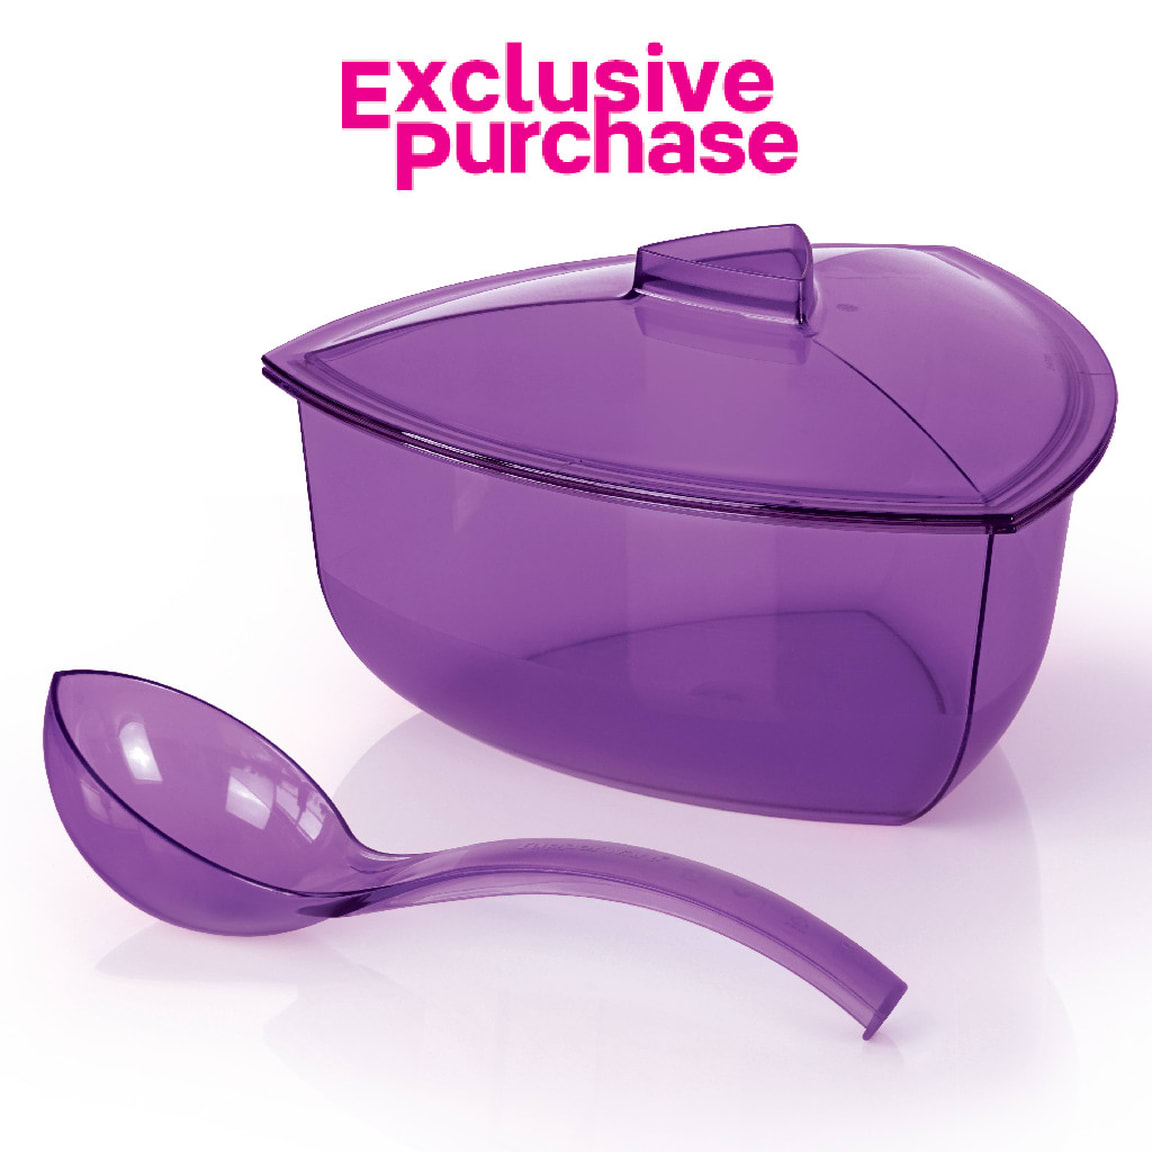 Roza Bowl with Ladle (1) 2.2L